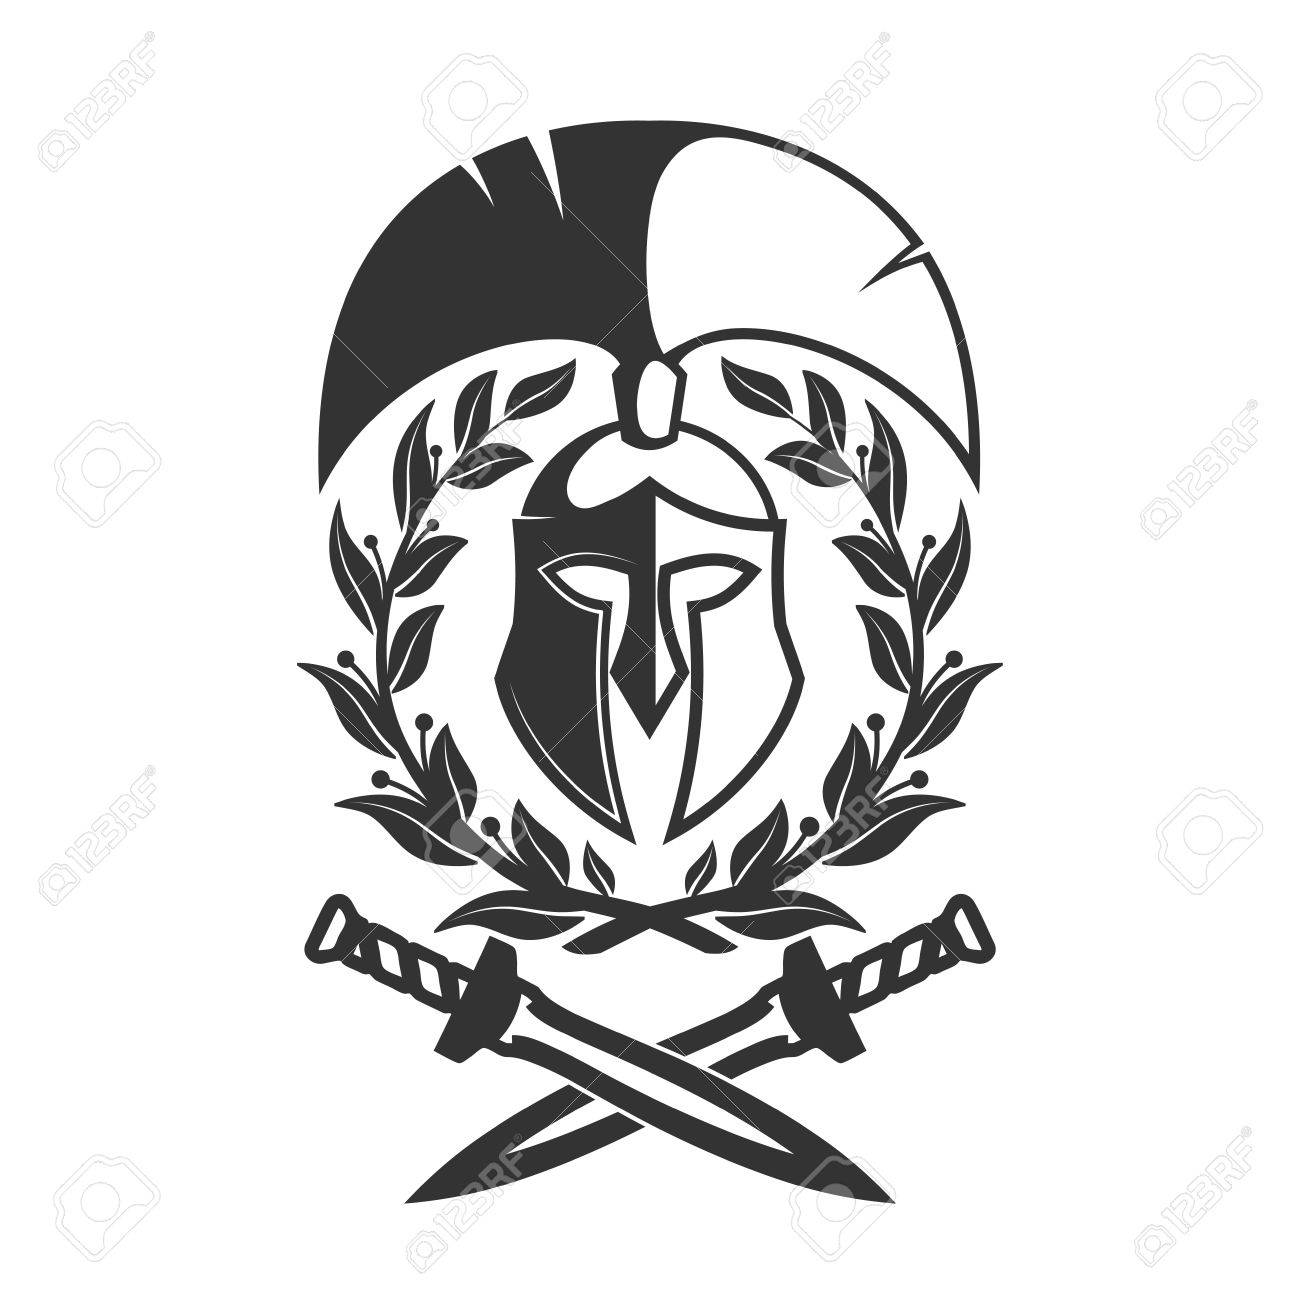 Military Symbol Spartan Helmet In Laurel Wreath